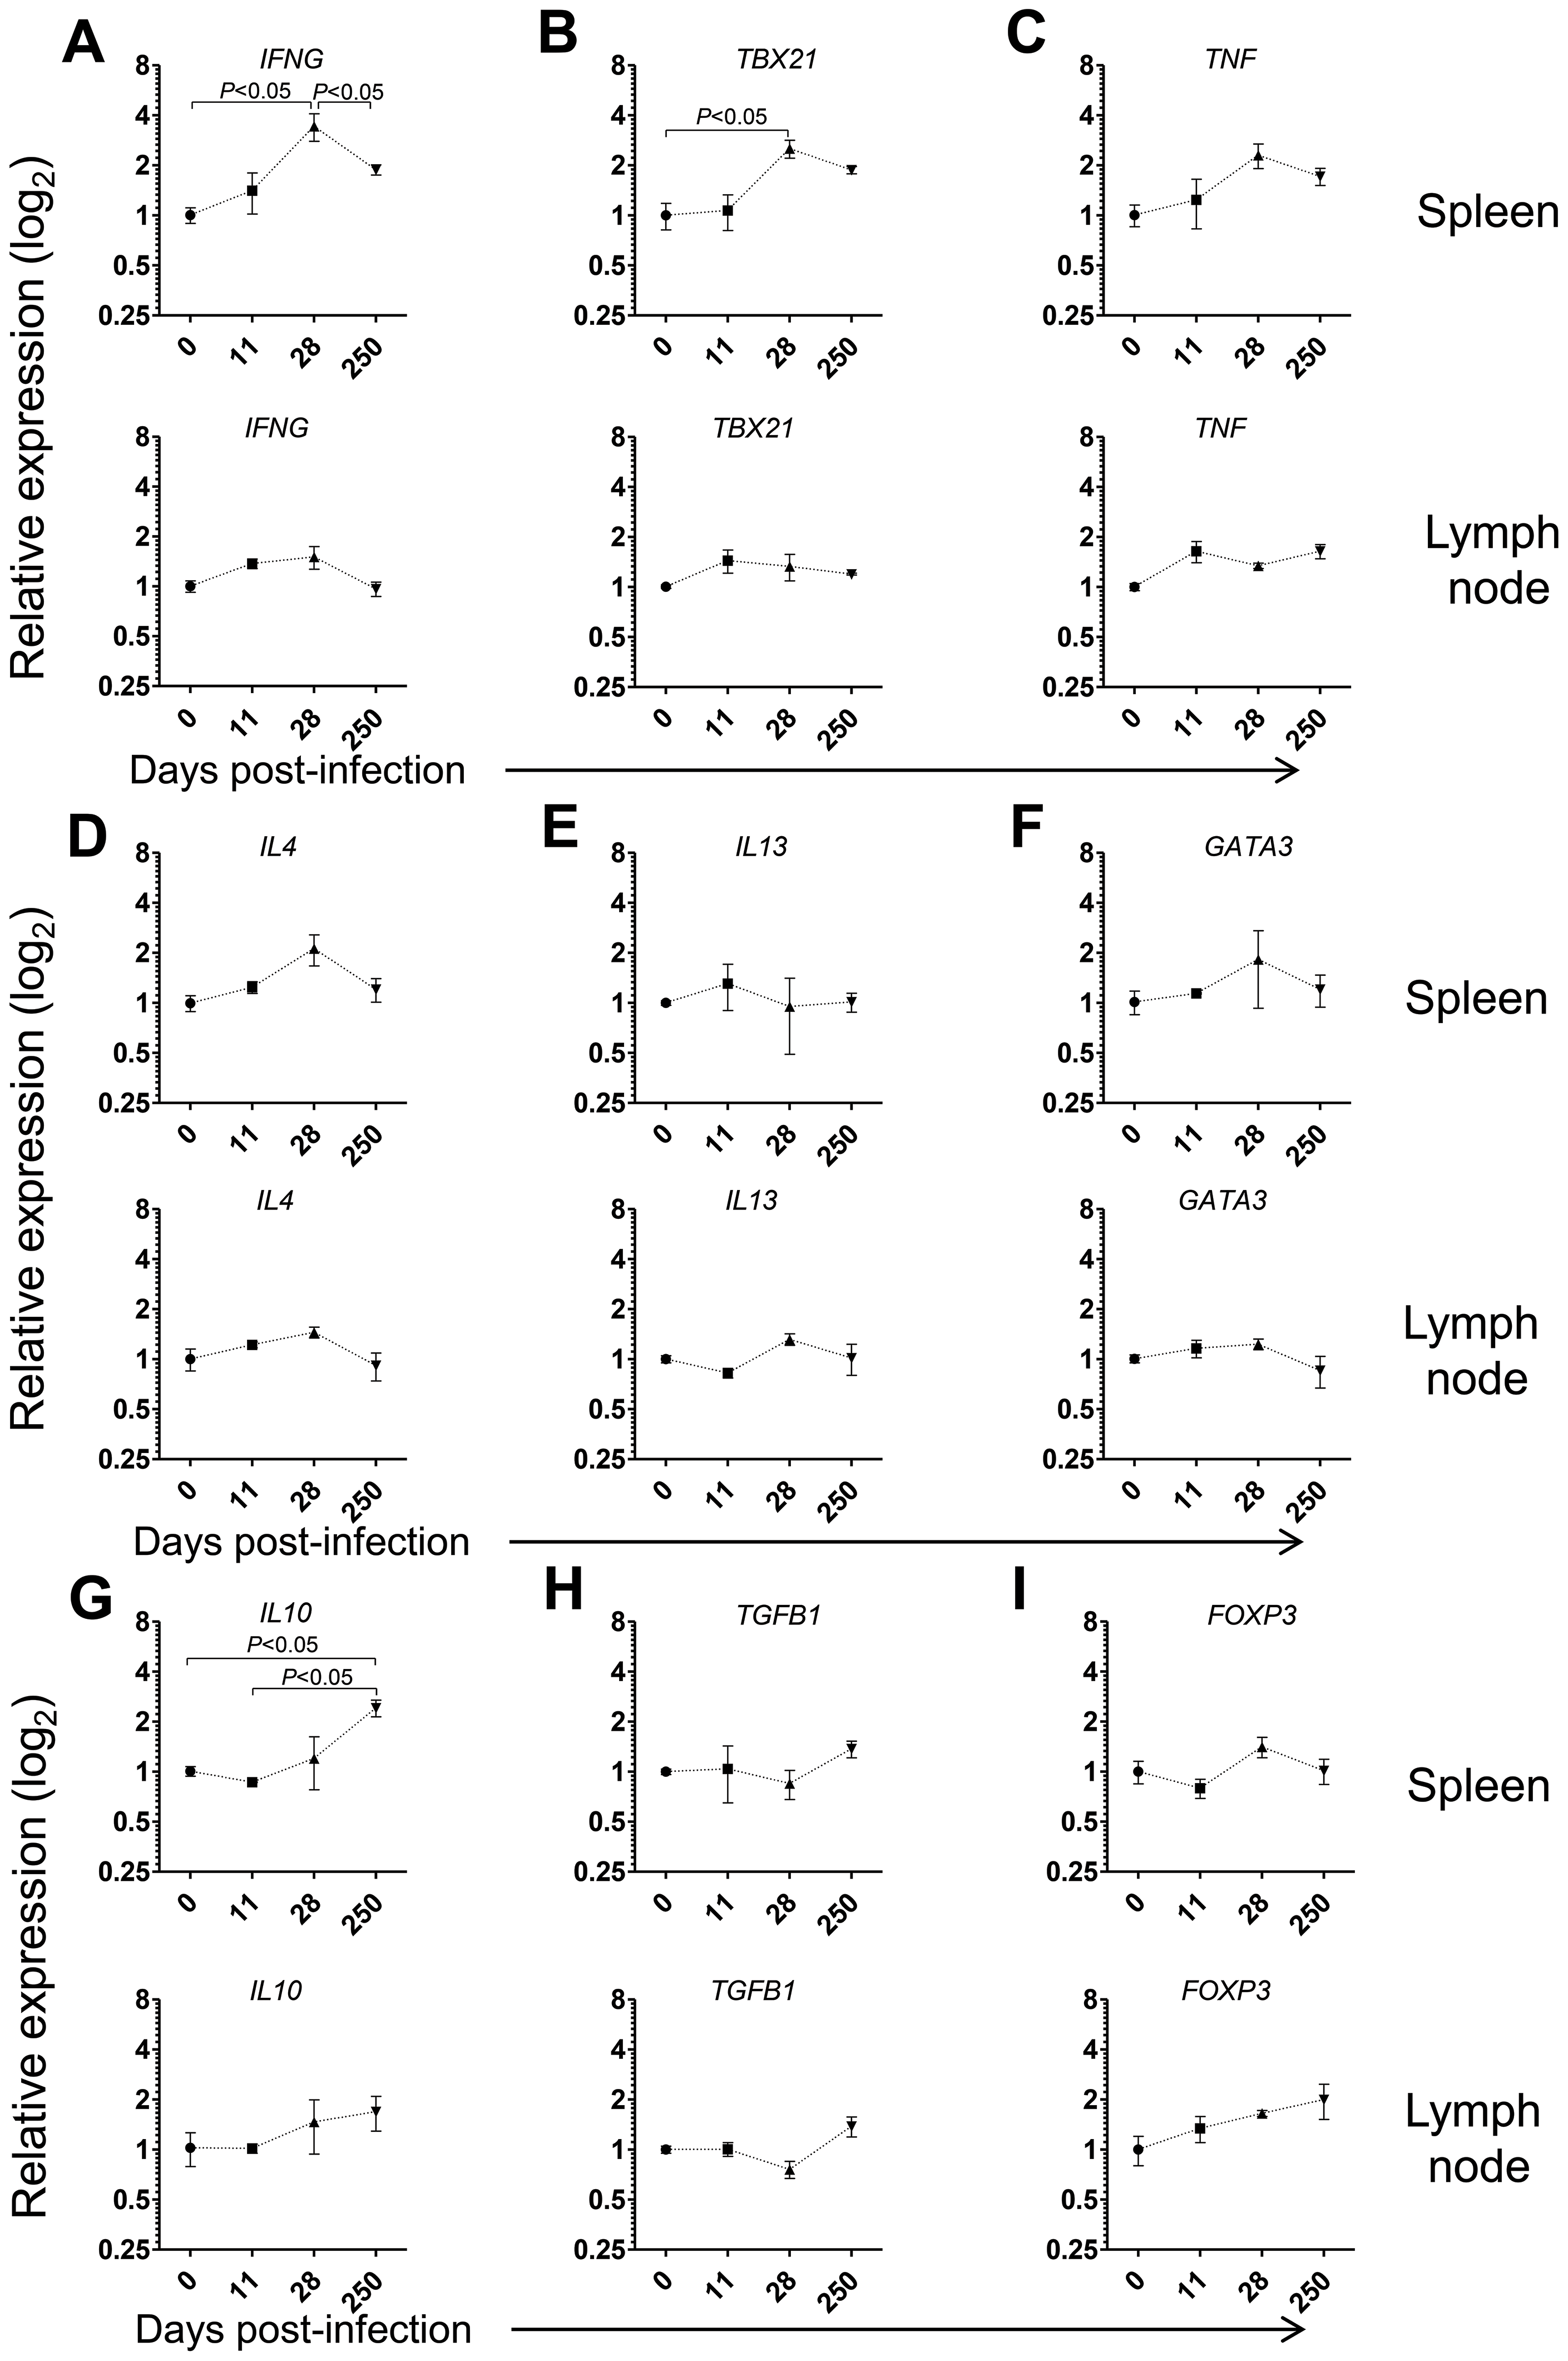 Gene expression profile of CD4 T cells in the spleen and LNs during <i>L. infantum</i> infection of rhesus macaques.